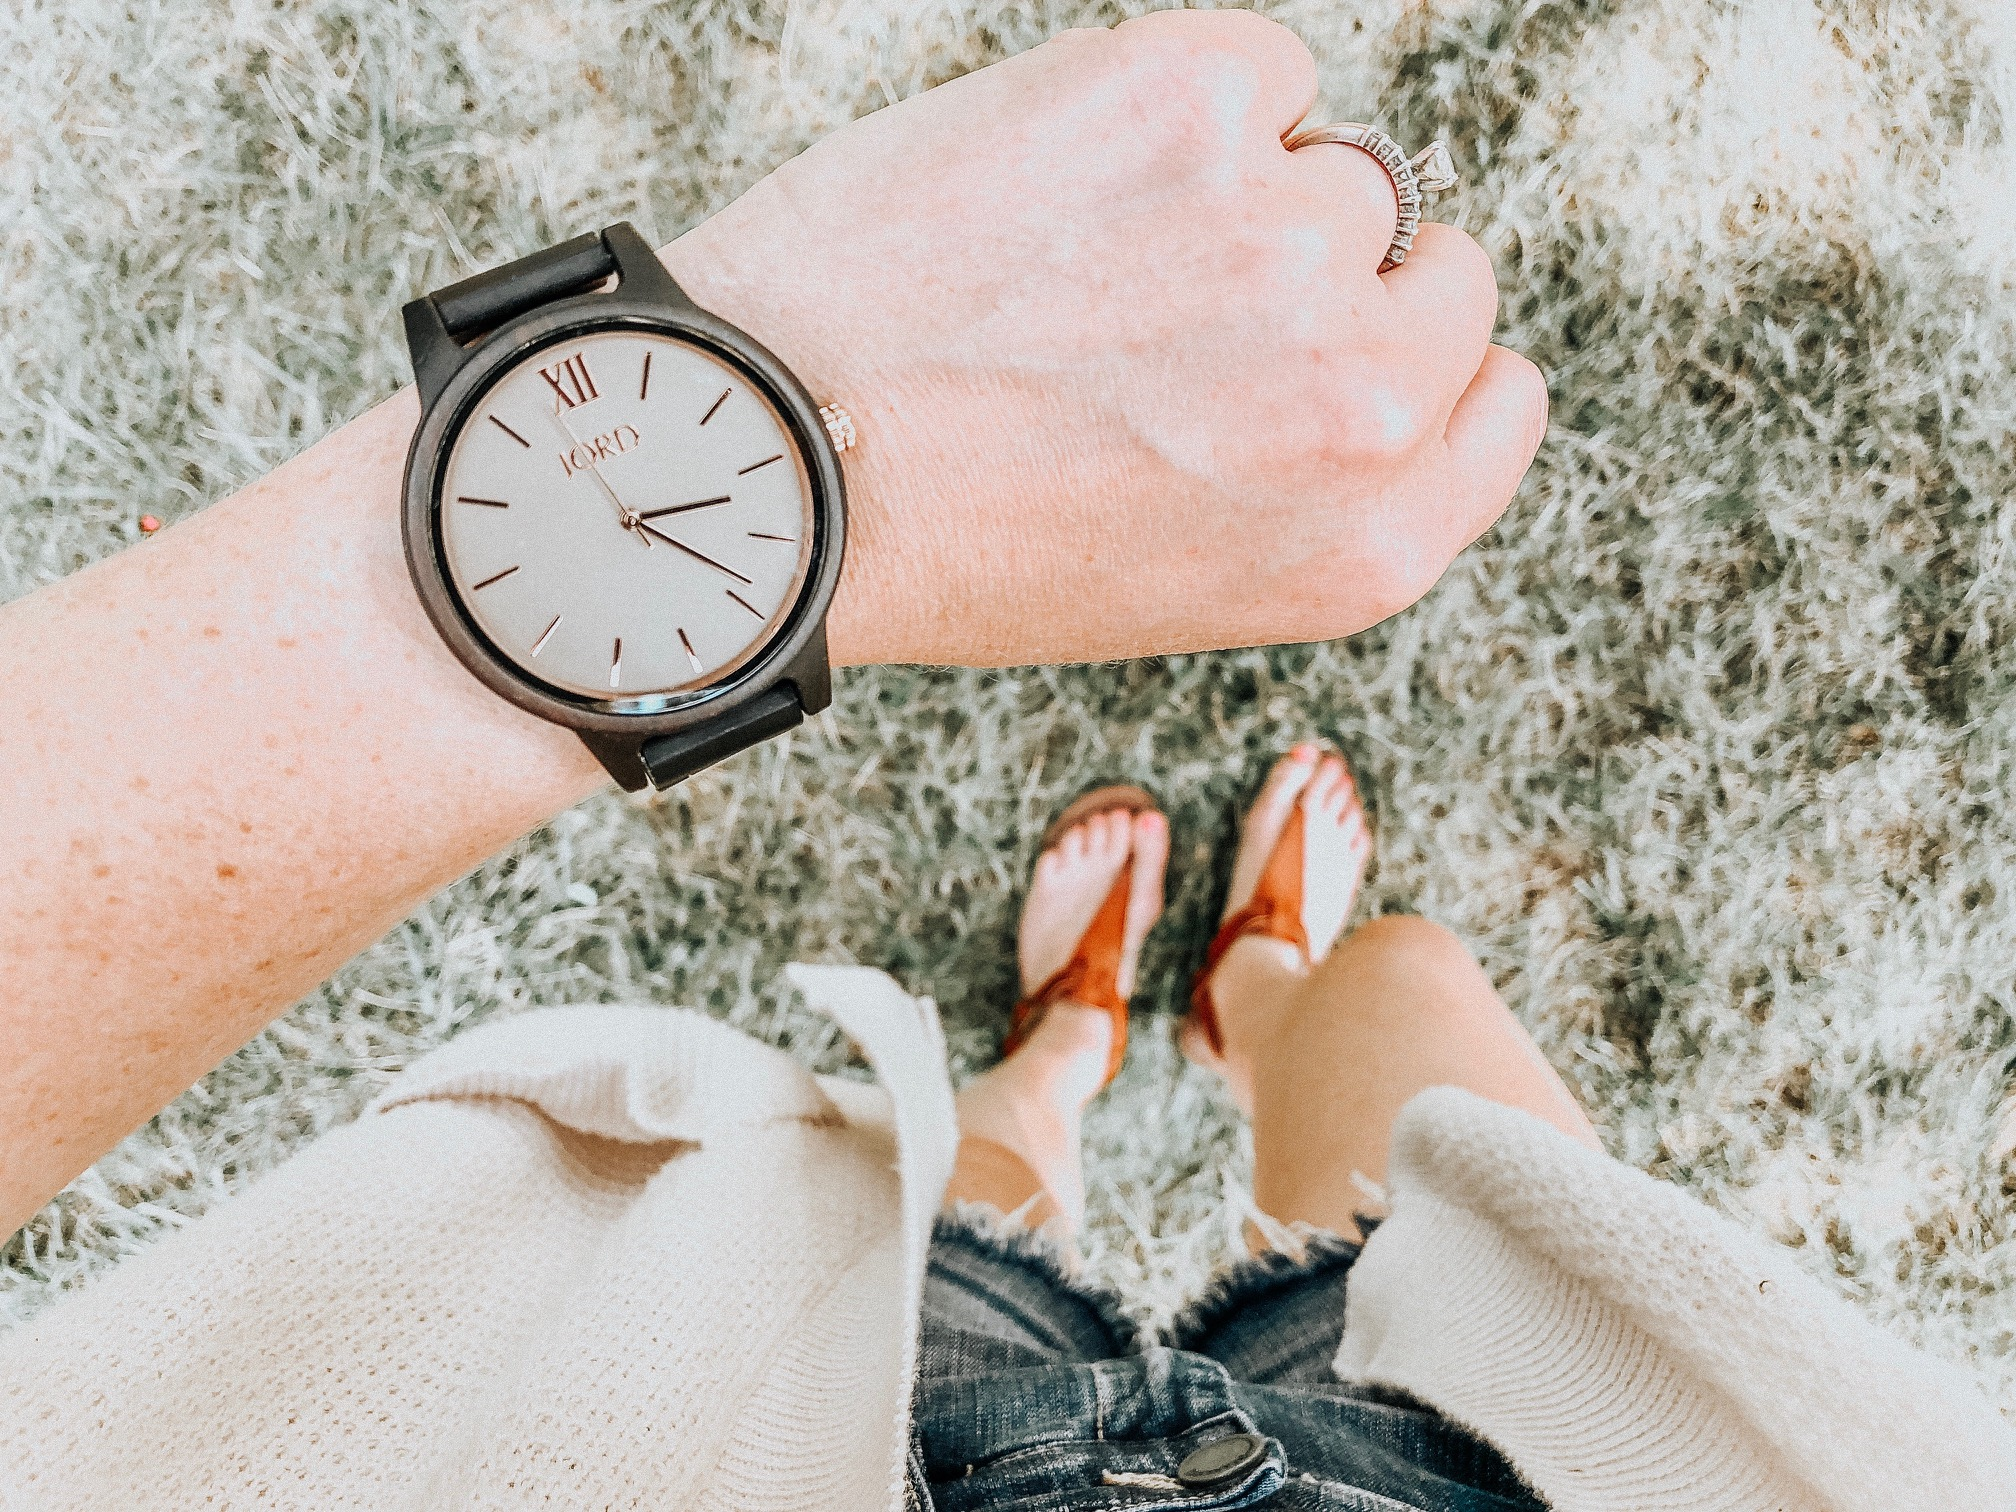 Daily Splendor - August Instagram Roundup #casualllook #watch #jordwatch